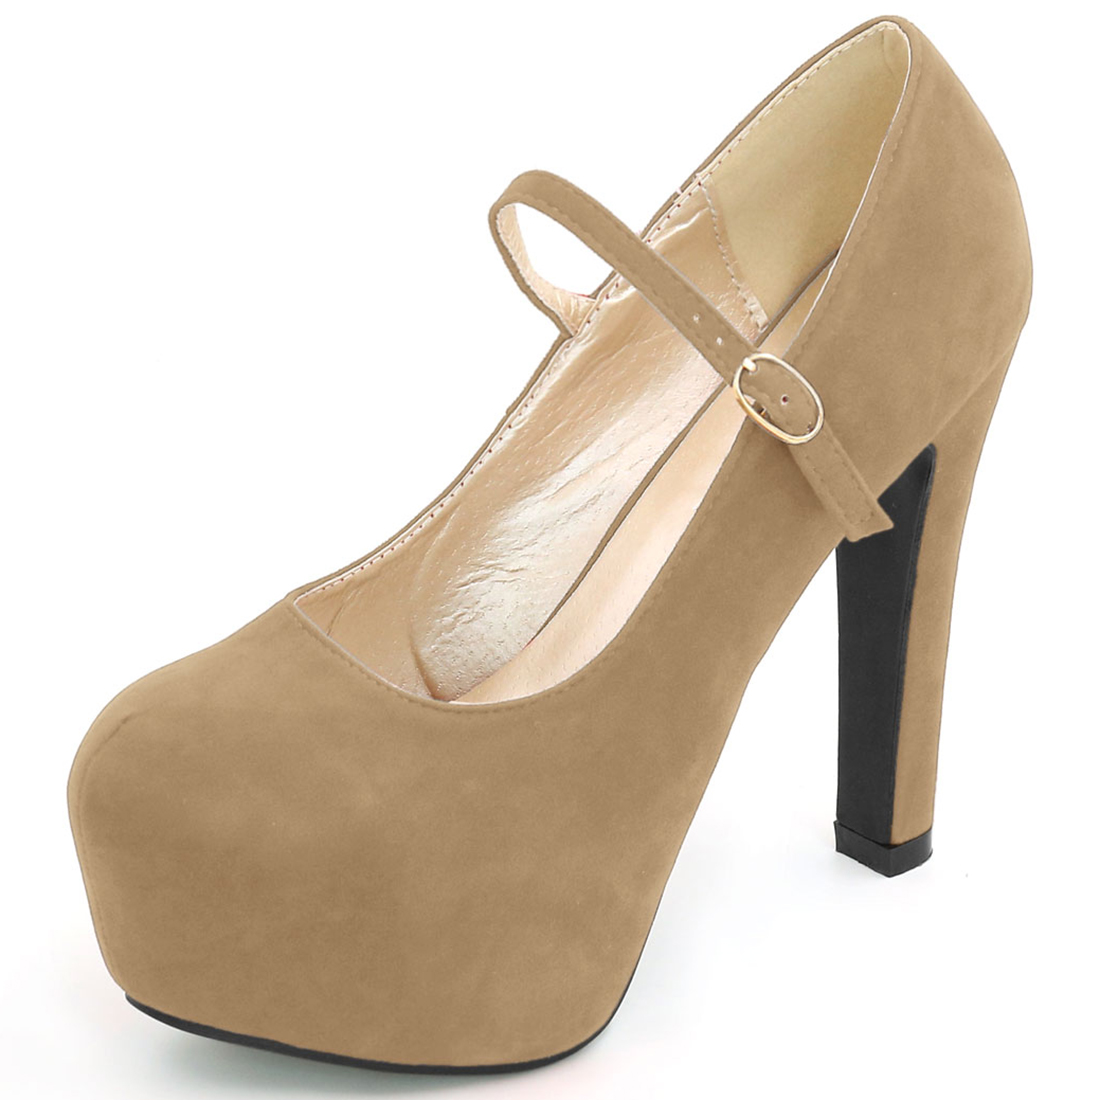 Woman Rounded Toe Chunky Platform Buckle Strap Pumps Dark Beige US 7.5